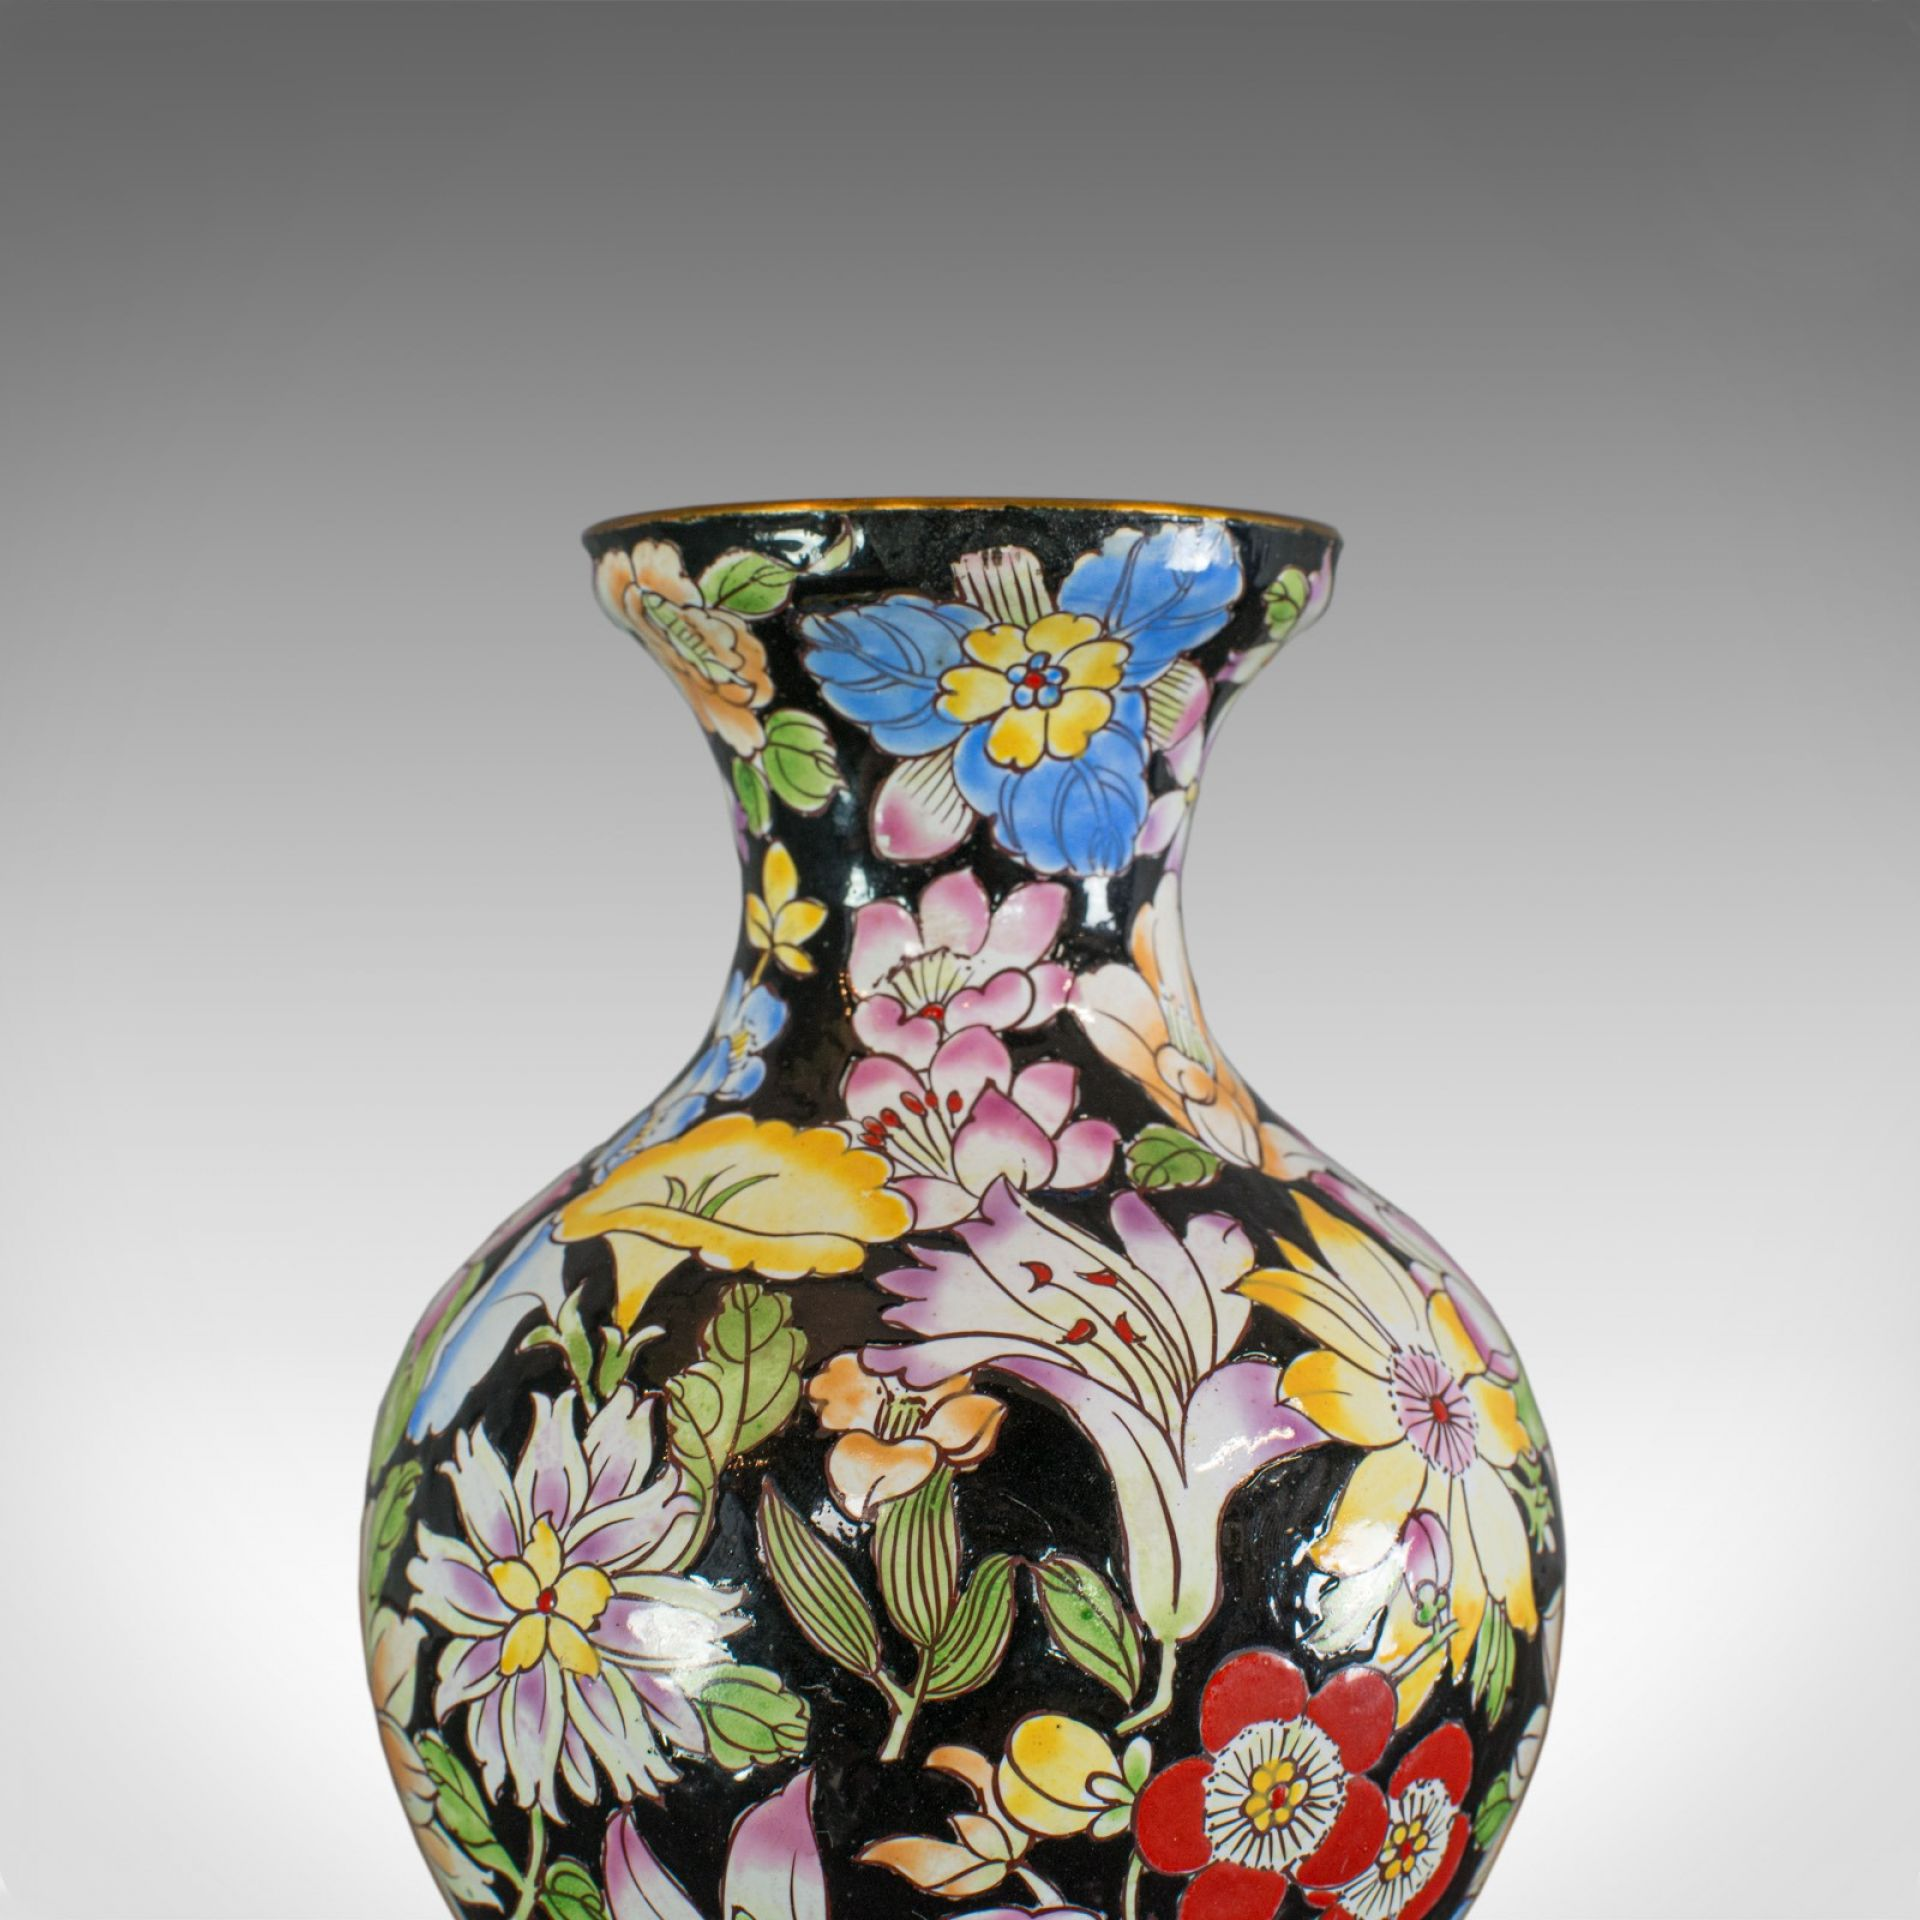 Antique Decorative Vase, French, Cloisonne, Baluster Urn, Victorian, Circa 1880